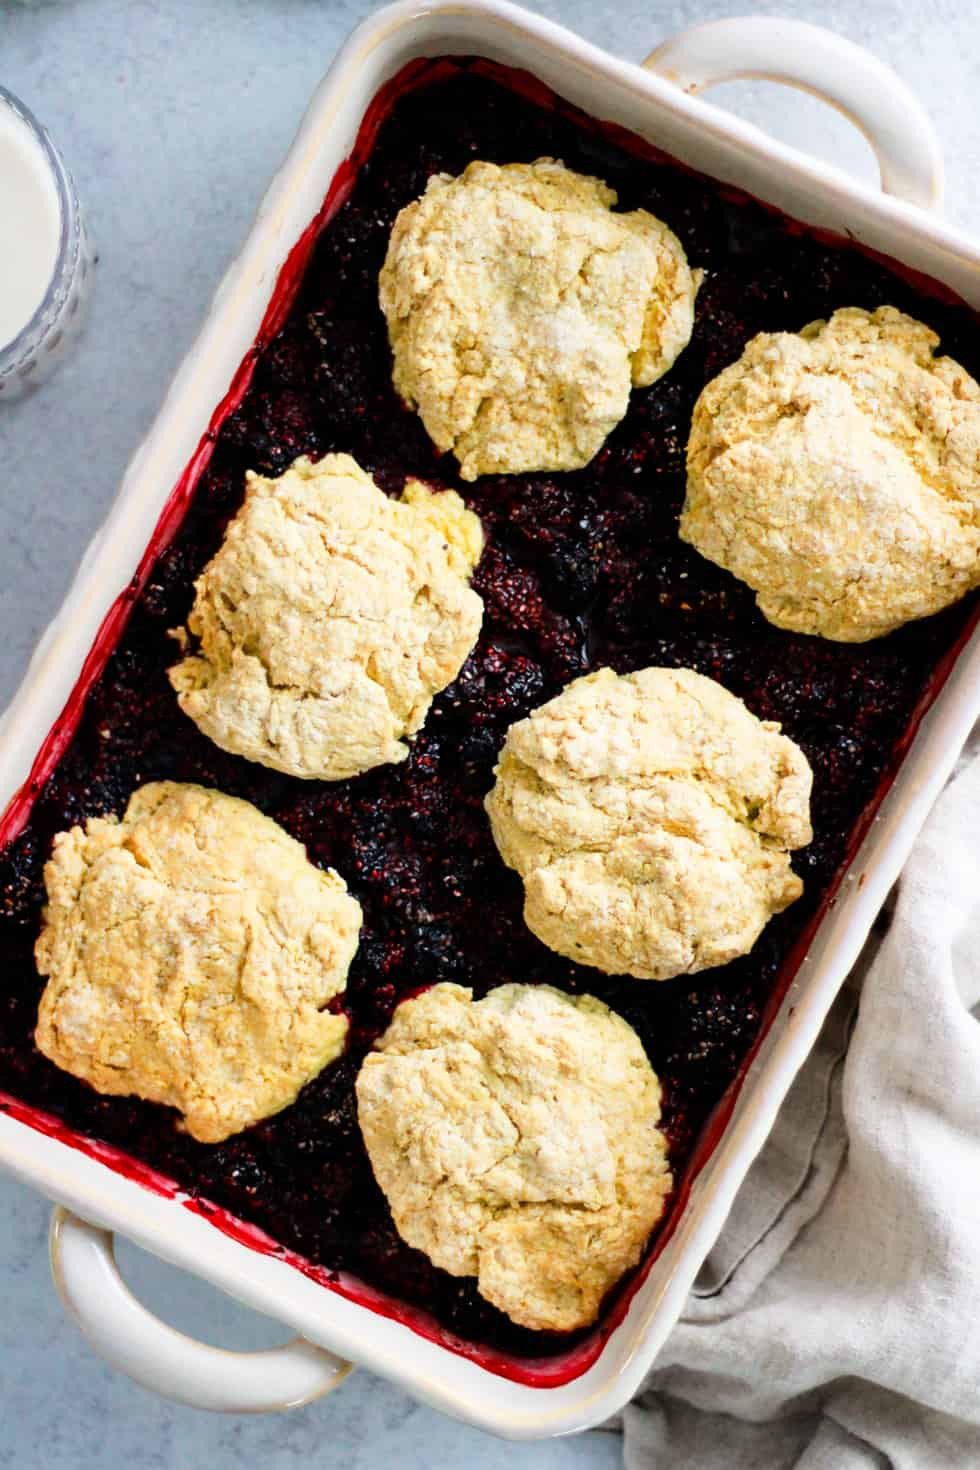 Berries covered with whole wheat biscuit topping in a white baking dish.